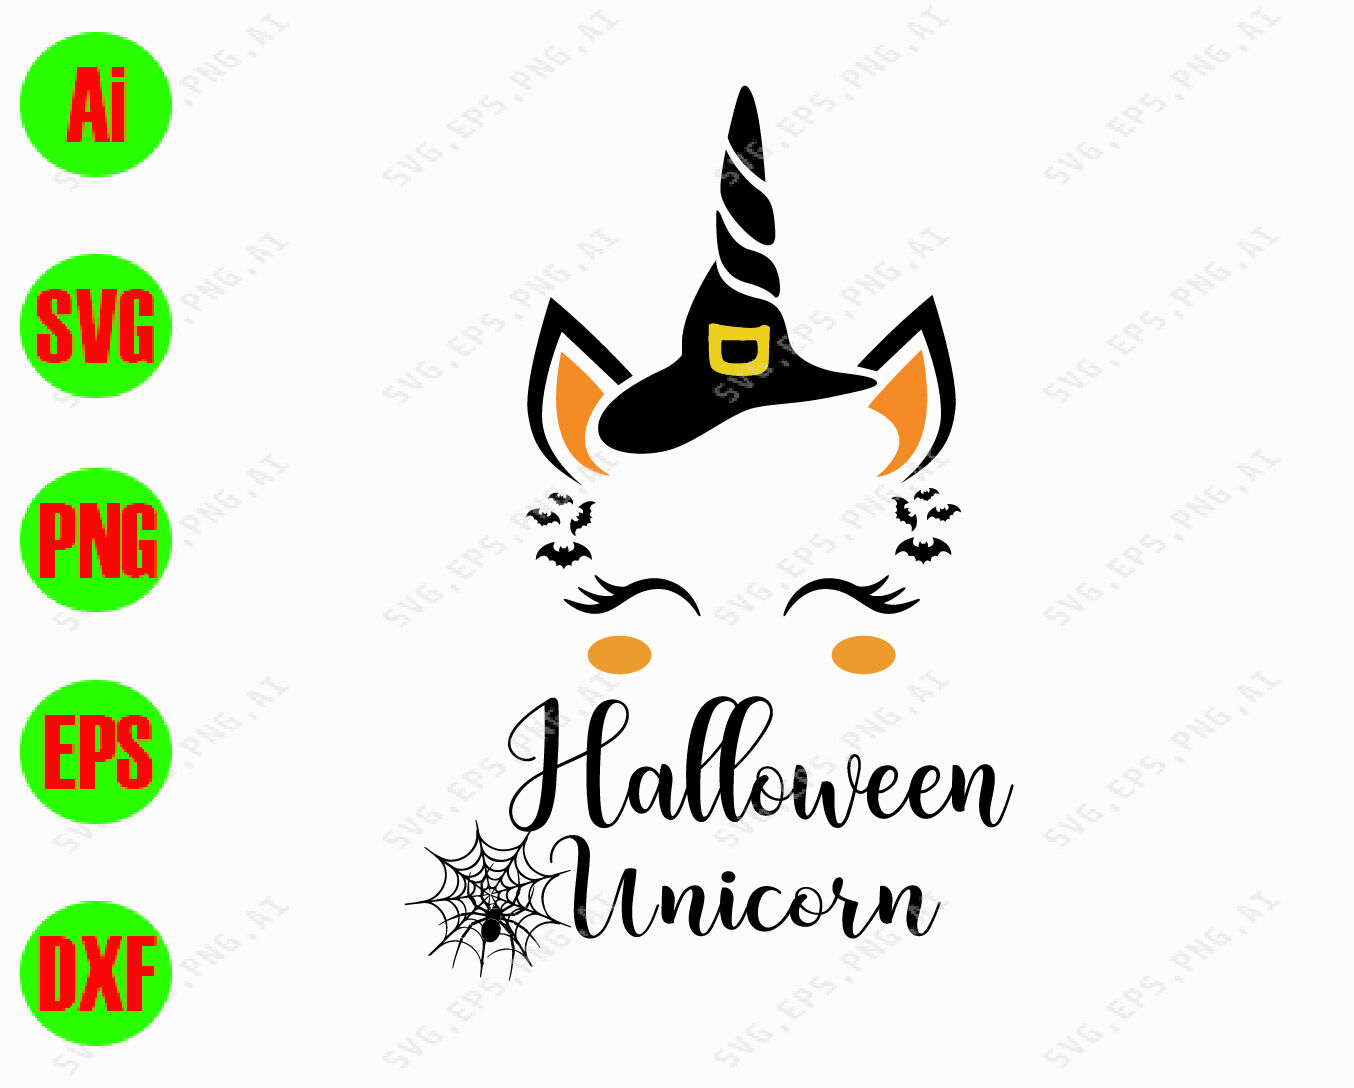 Halloween unicorn svg, dxf,eps,png, Digital Download By ...